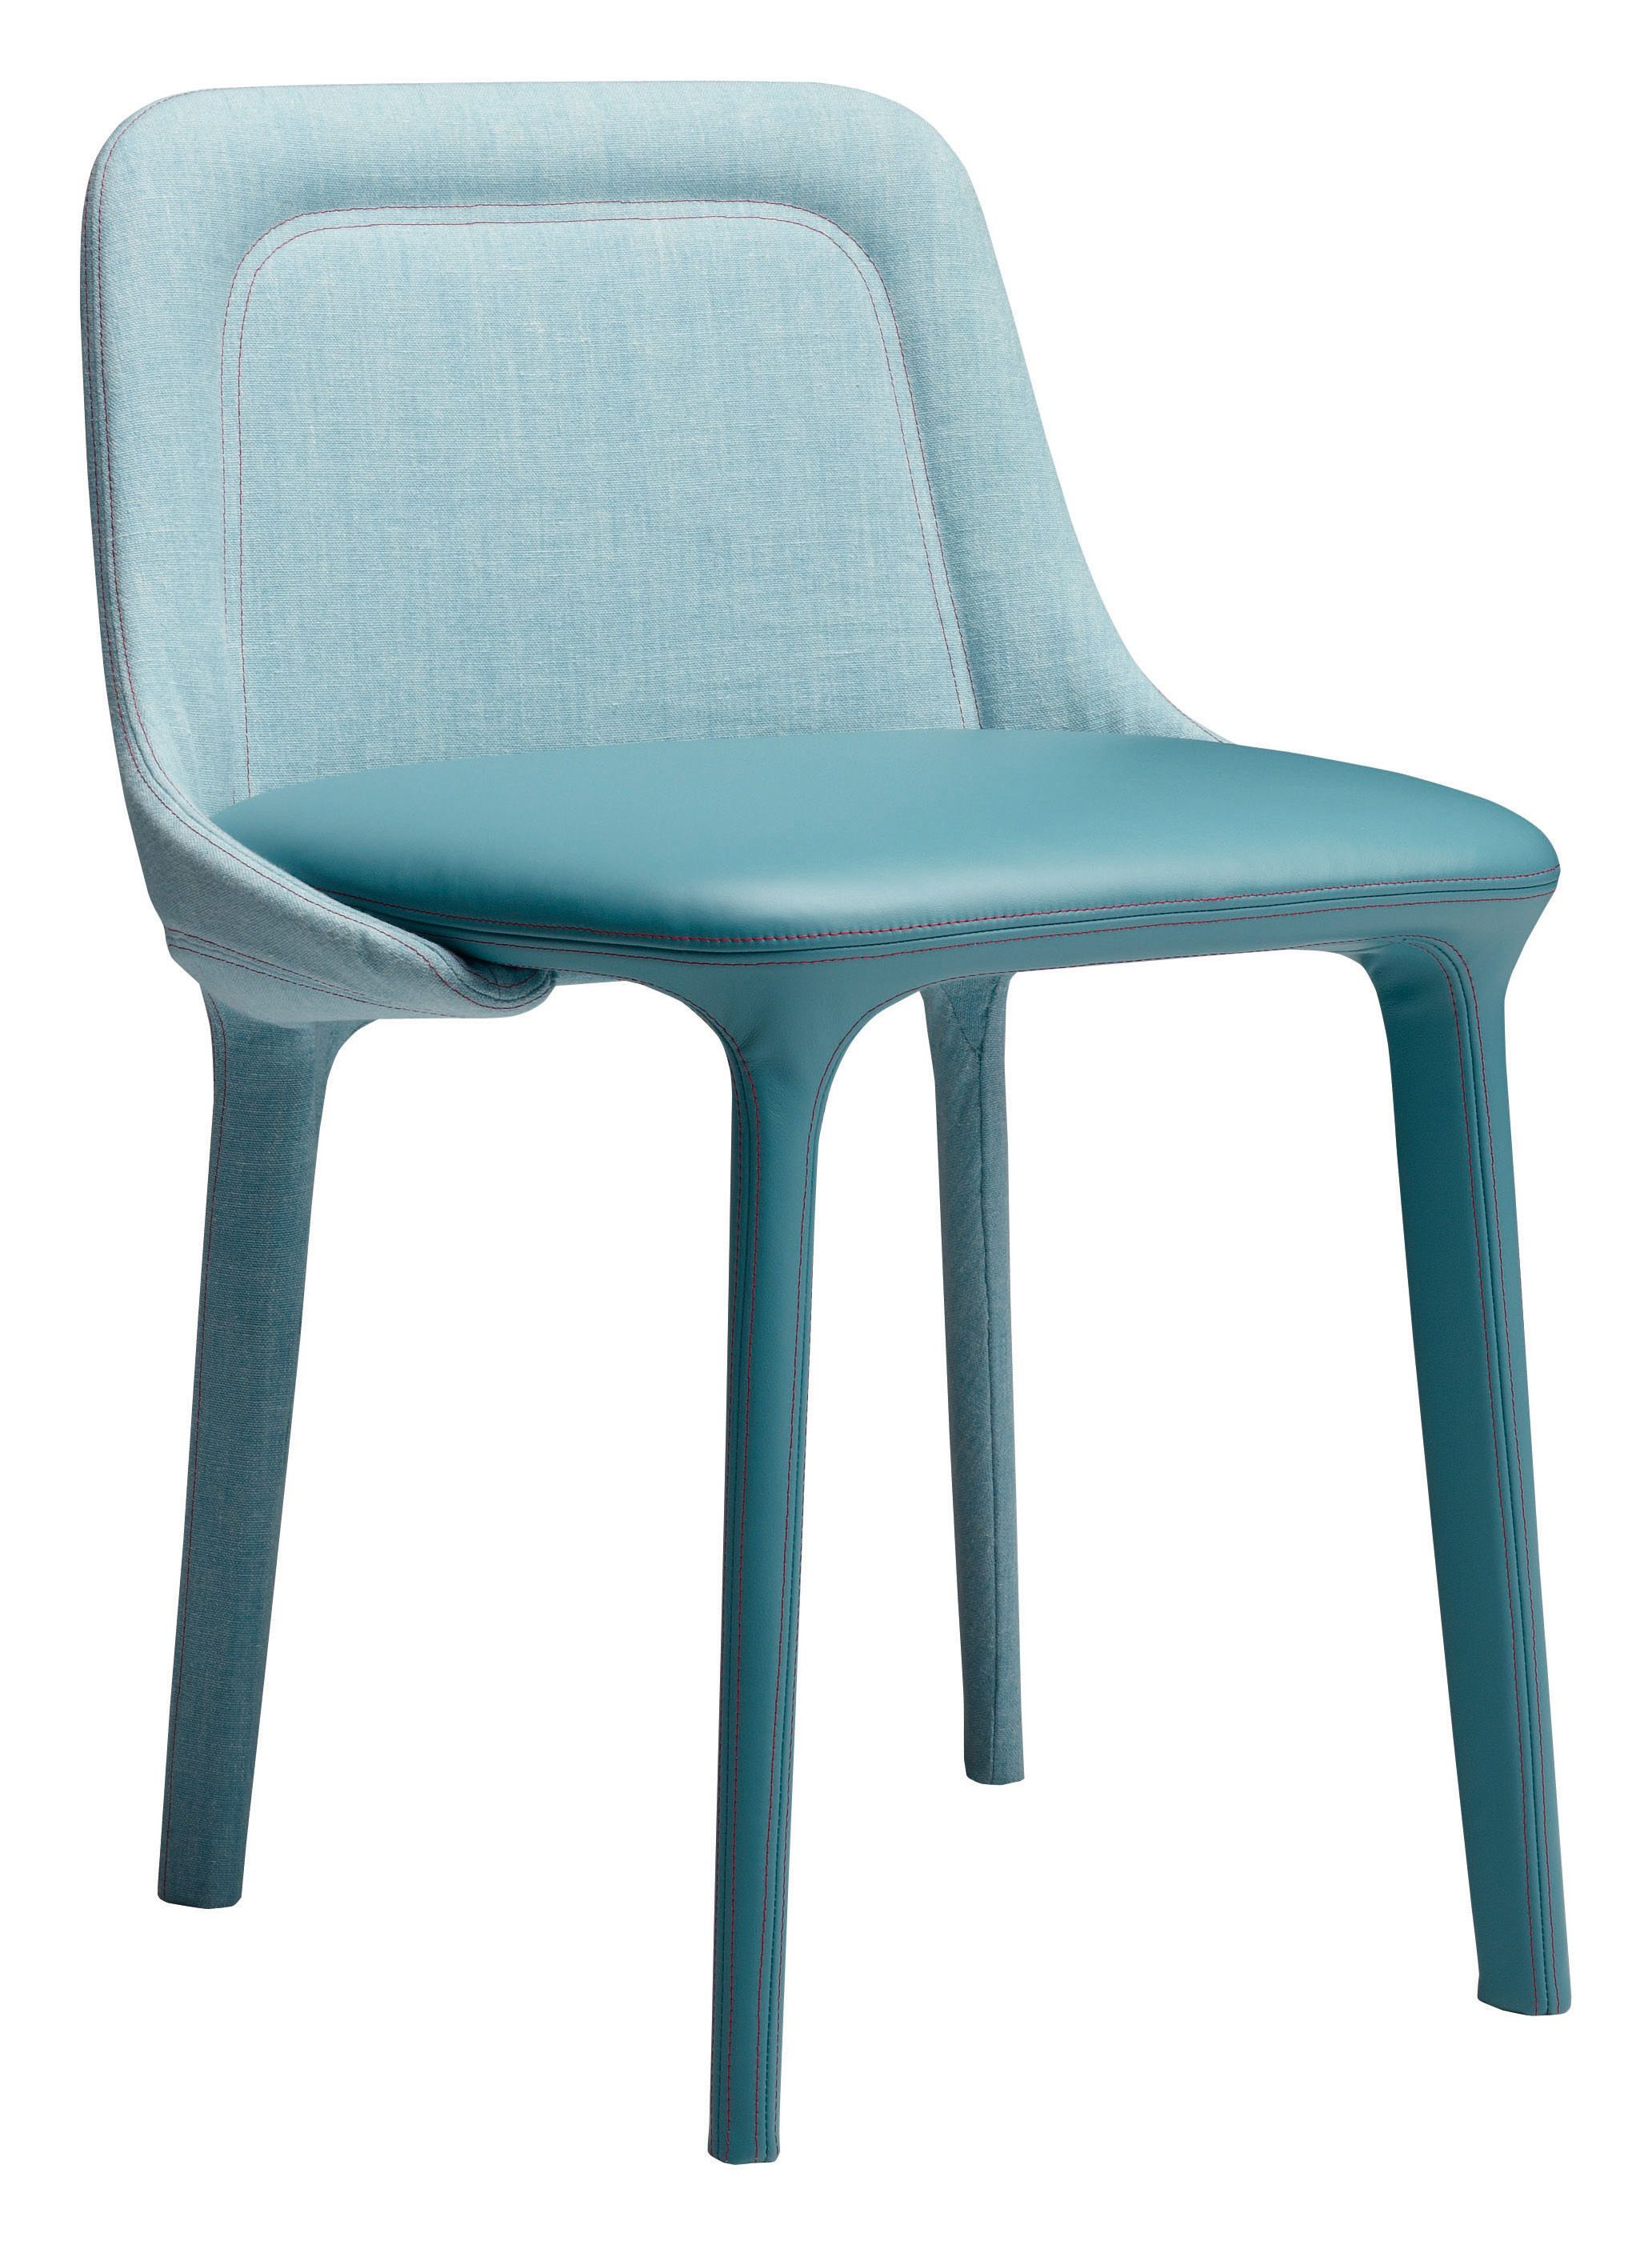 Chaise Rembourree Lepel Casamania Bleu Made In Design Comfy Sofa Chair Upholstered Chairs Chair